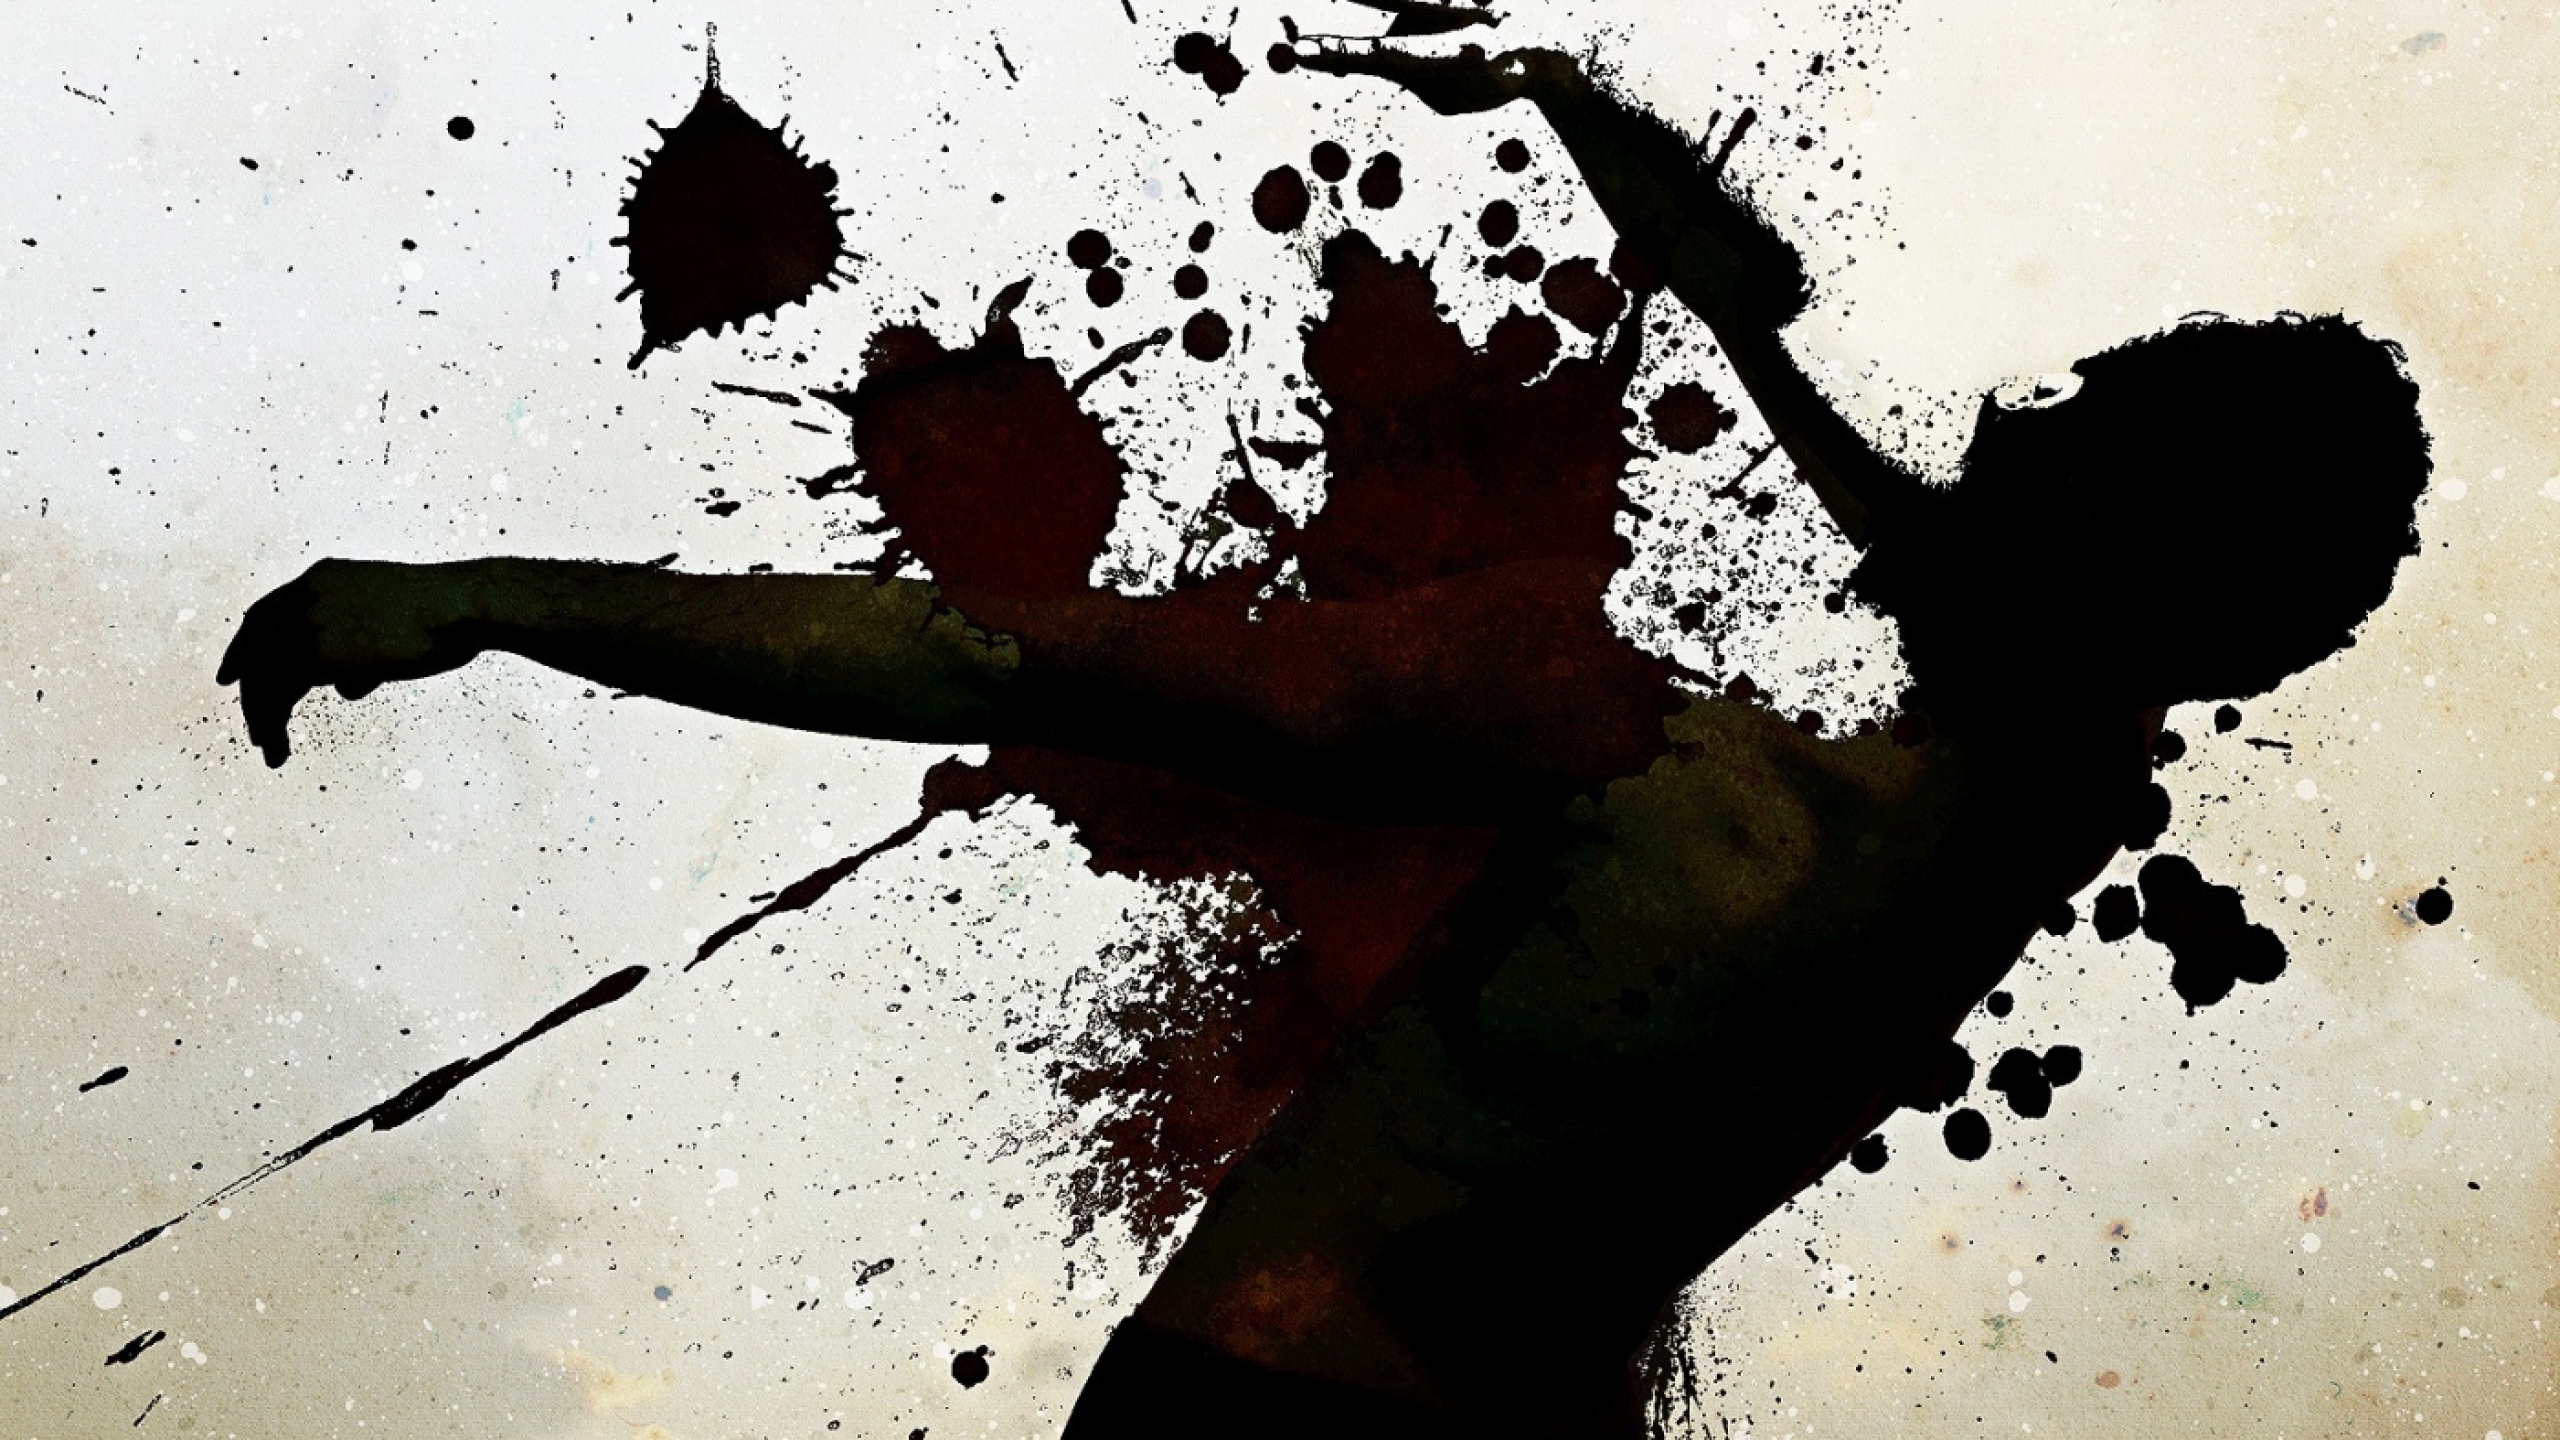 murder_death_blood_sparks_24412_2560x1440